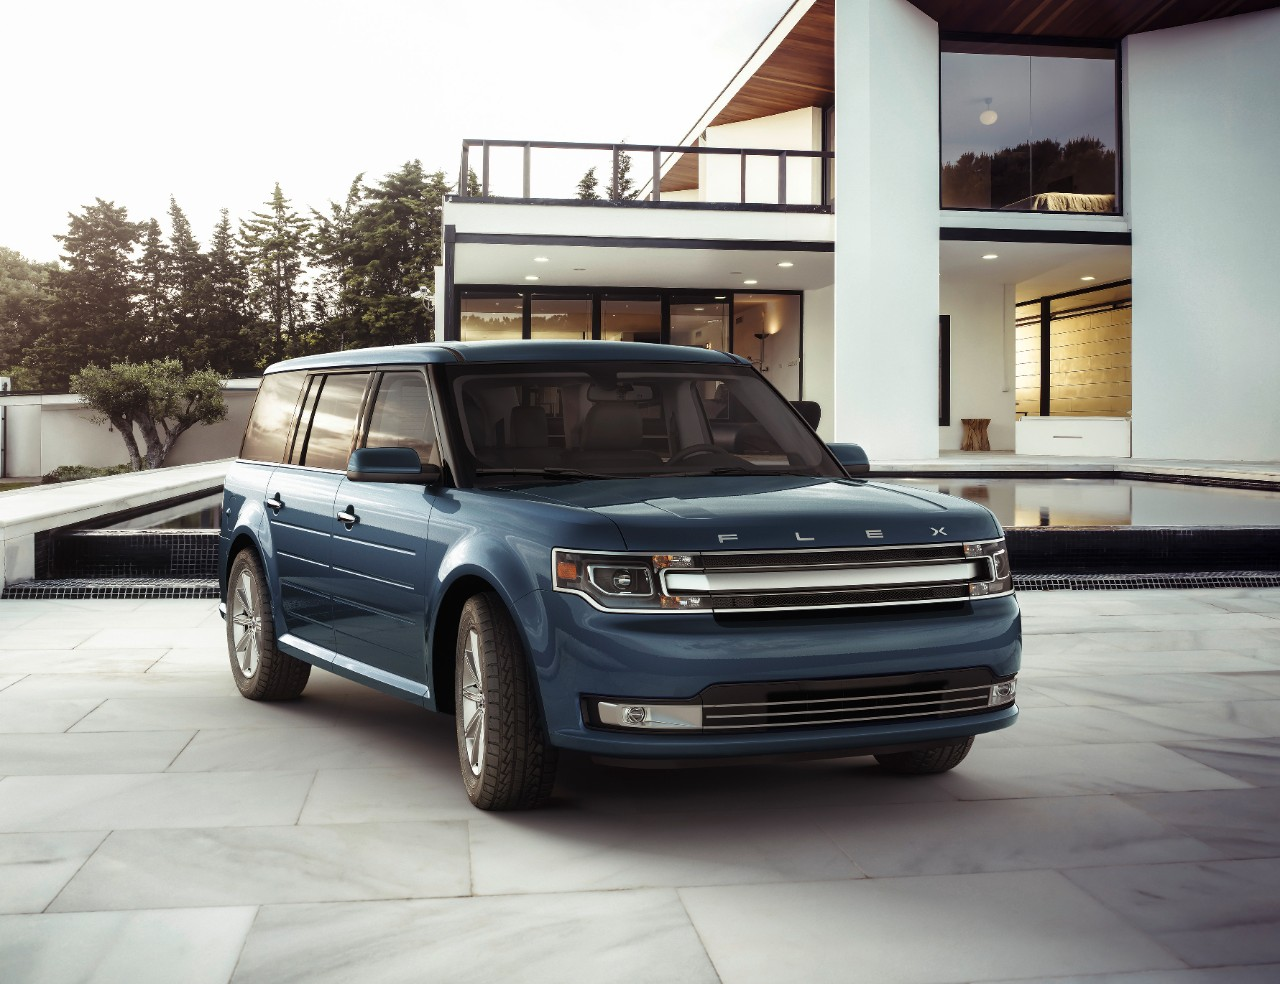 2017 ford flex performance review the car connection. Black Bedroom Furniture Sets. Home Design Ideas